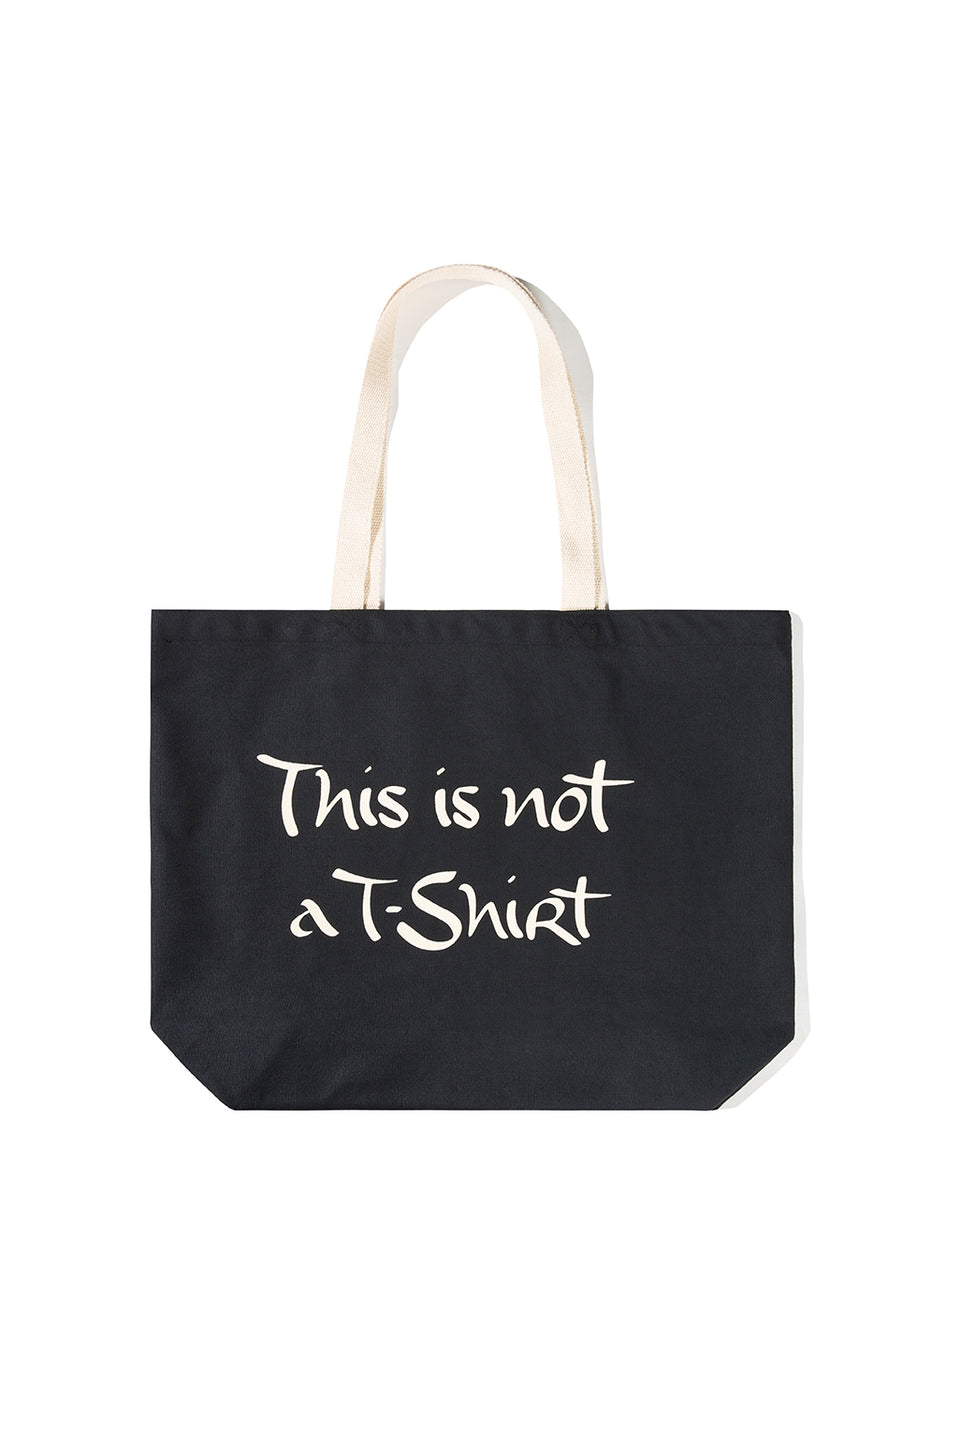 This Is Not a T-Shirt Tote